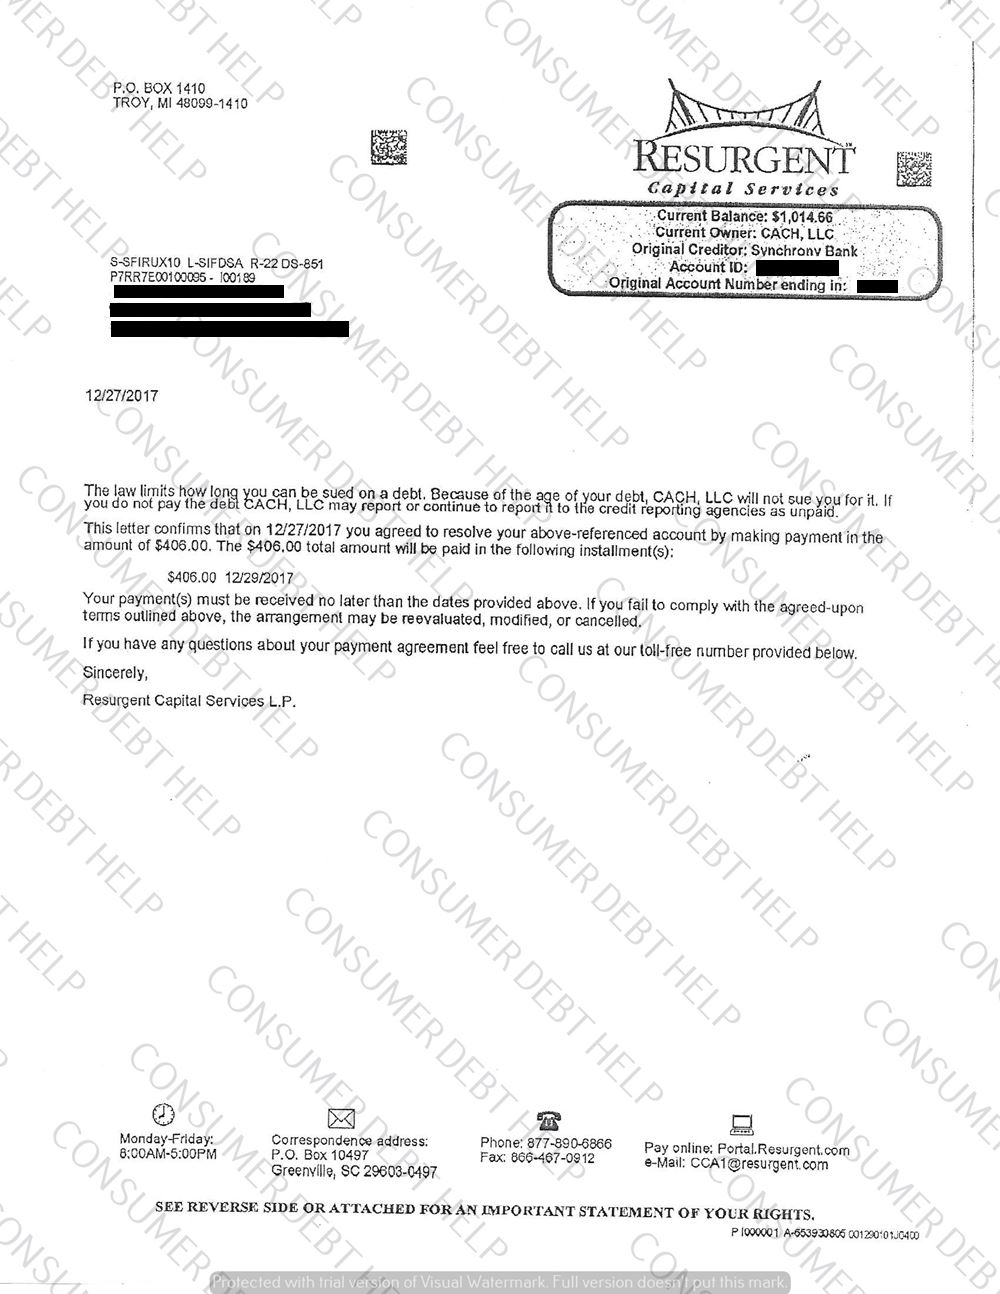 Settlement Letter From Sony Synchrony Bank Consumer Debt Help